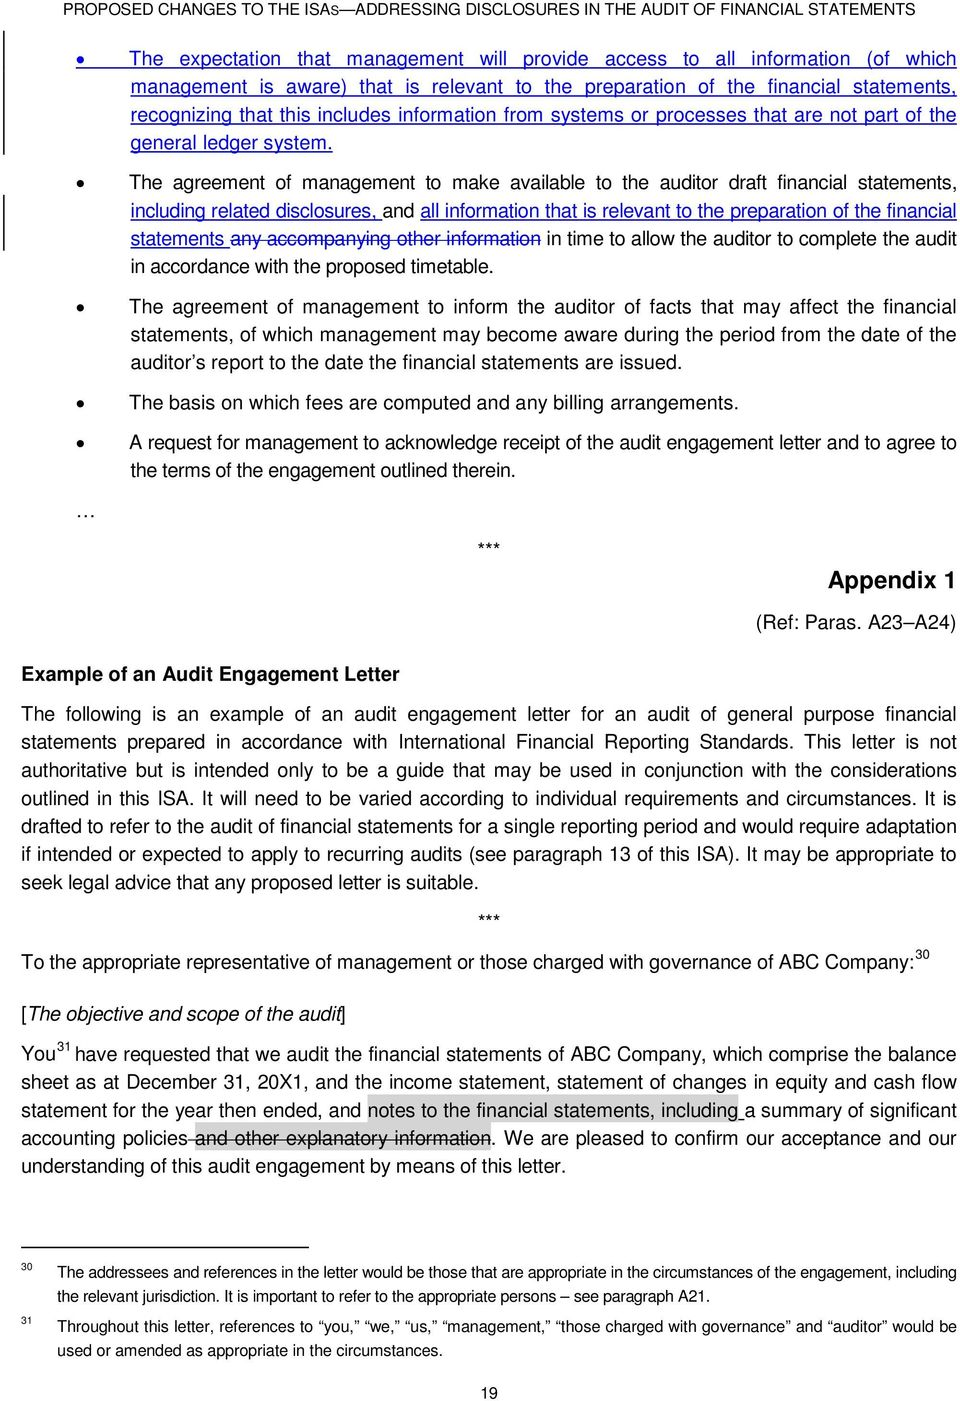 The agreement of management to make available to the auditor draft financial statements, including related disclosures, and all information that is relevant to the preparation of the financial